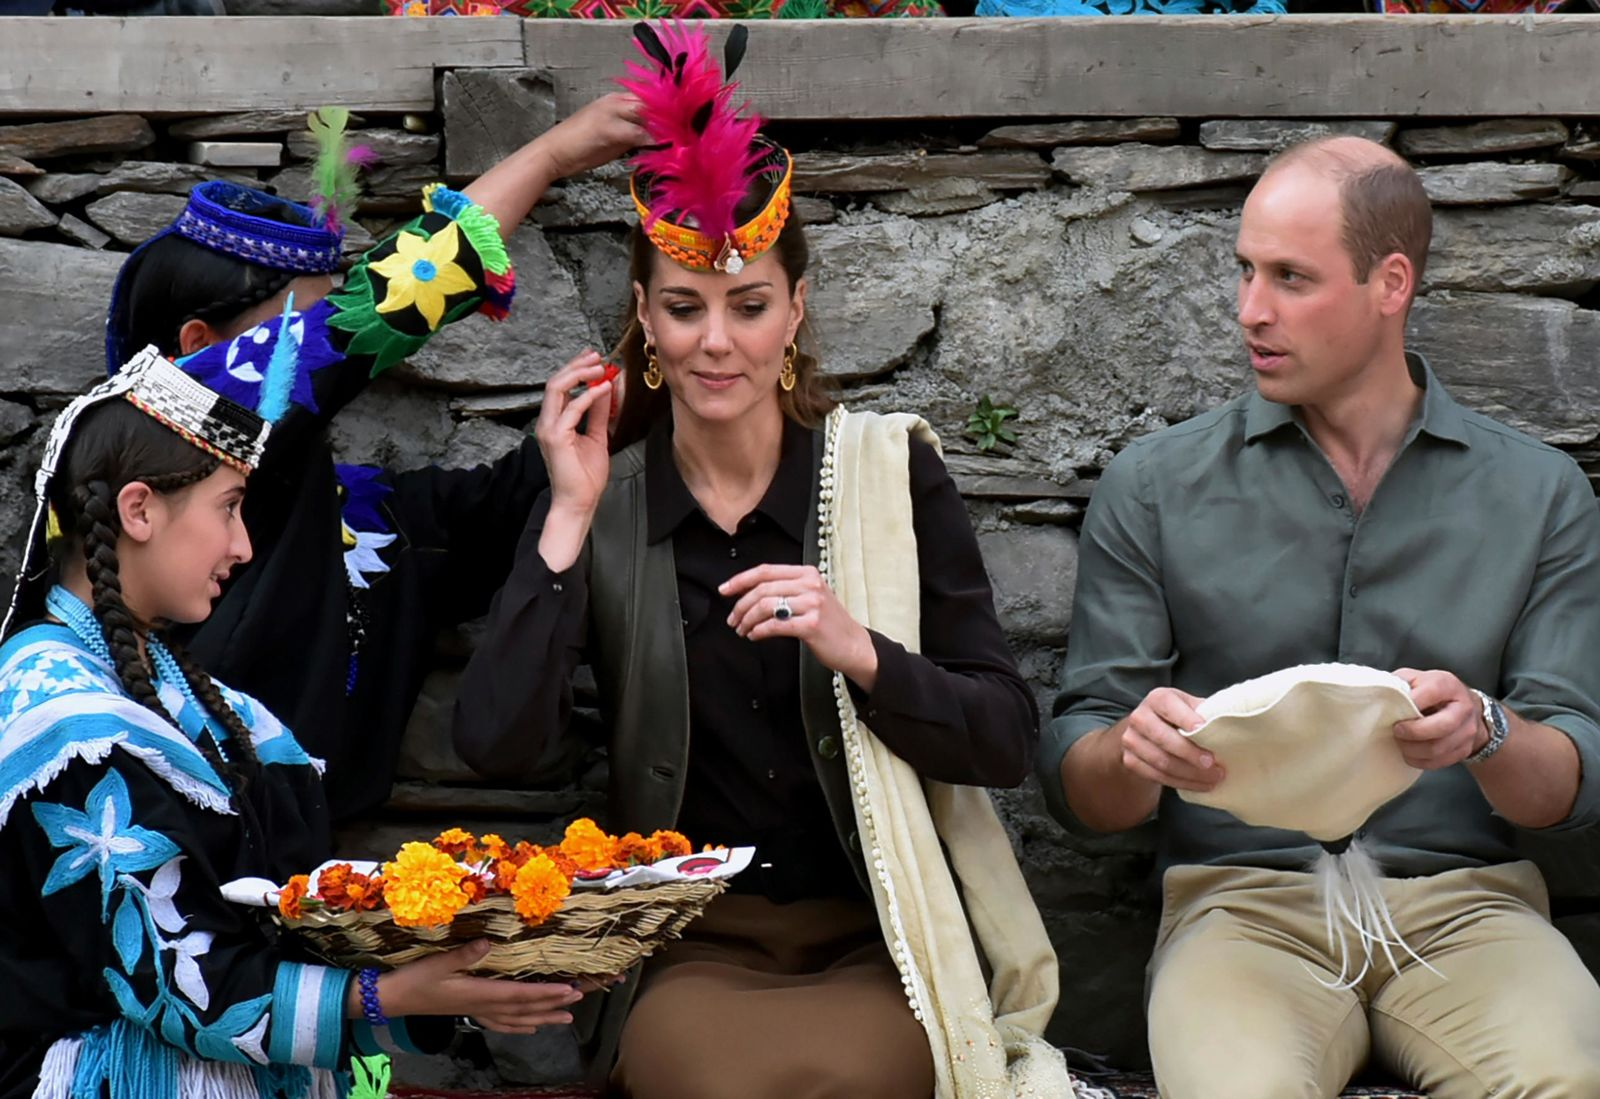 In this photo released by Press Information Department, Mmembers of Kalash community greet Britain's Prince William, center, and his wife Kate with traditional caps during their visit to Bumburate Valley, an area of Pakistan's northern Chitral district, Wednesday Oct. 16, 2019. (Press Information Department via AP)